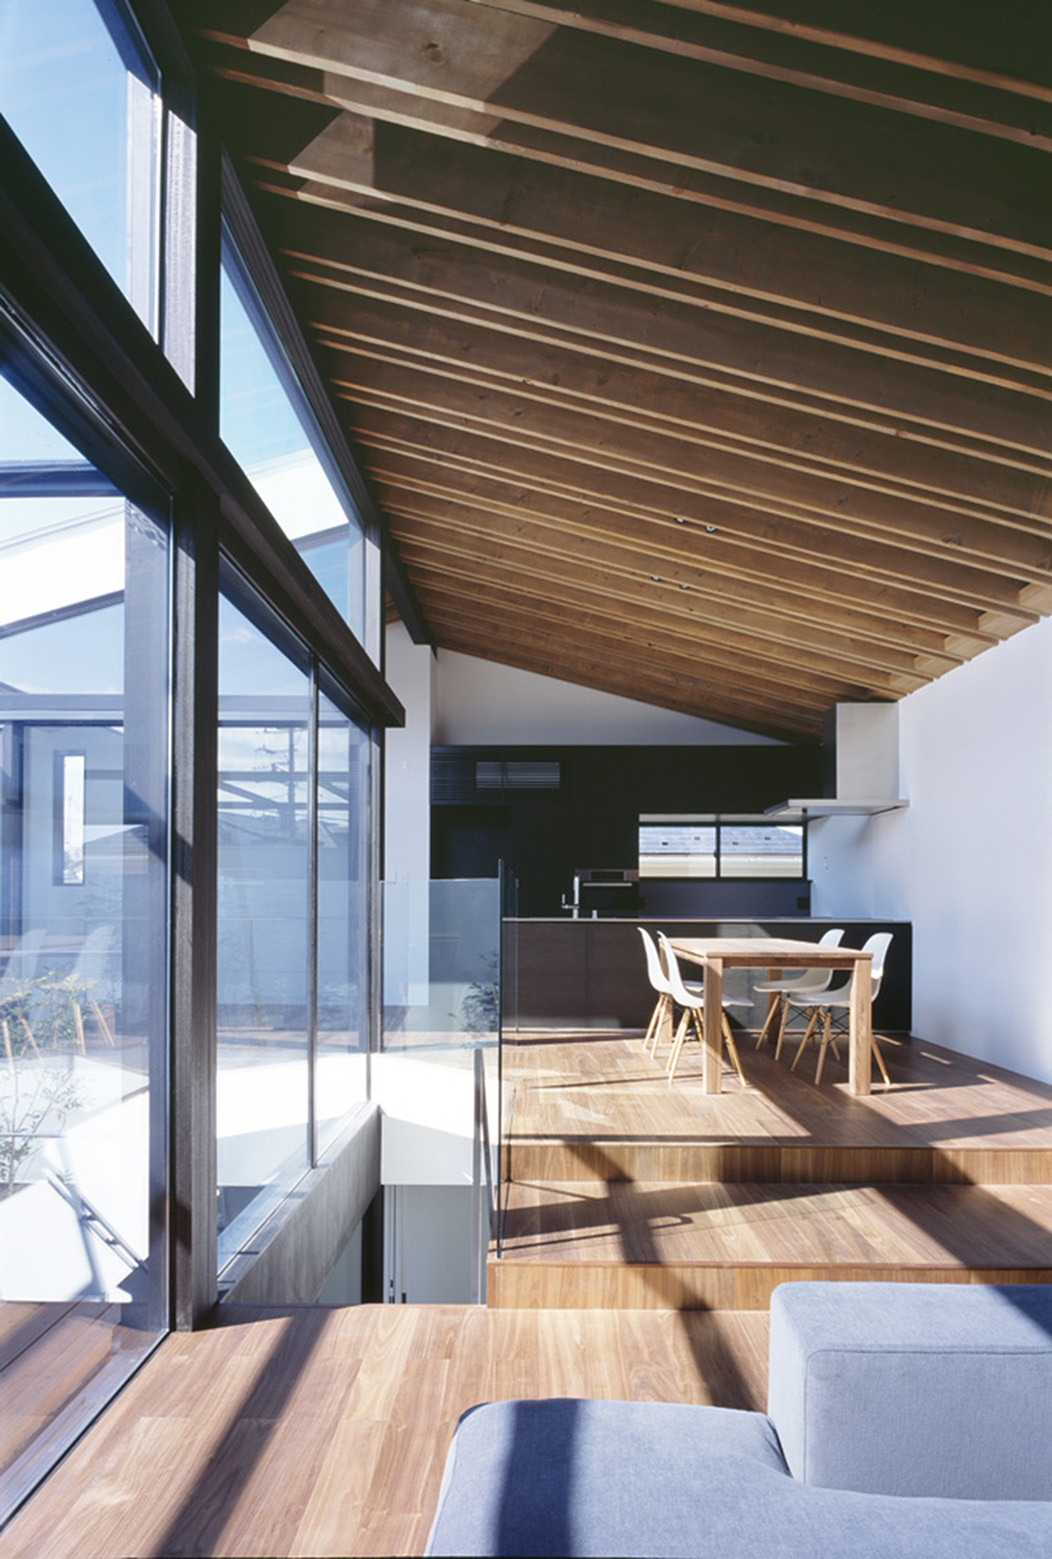 Casa Patio Apollo Architects Amp Associates Plataforma